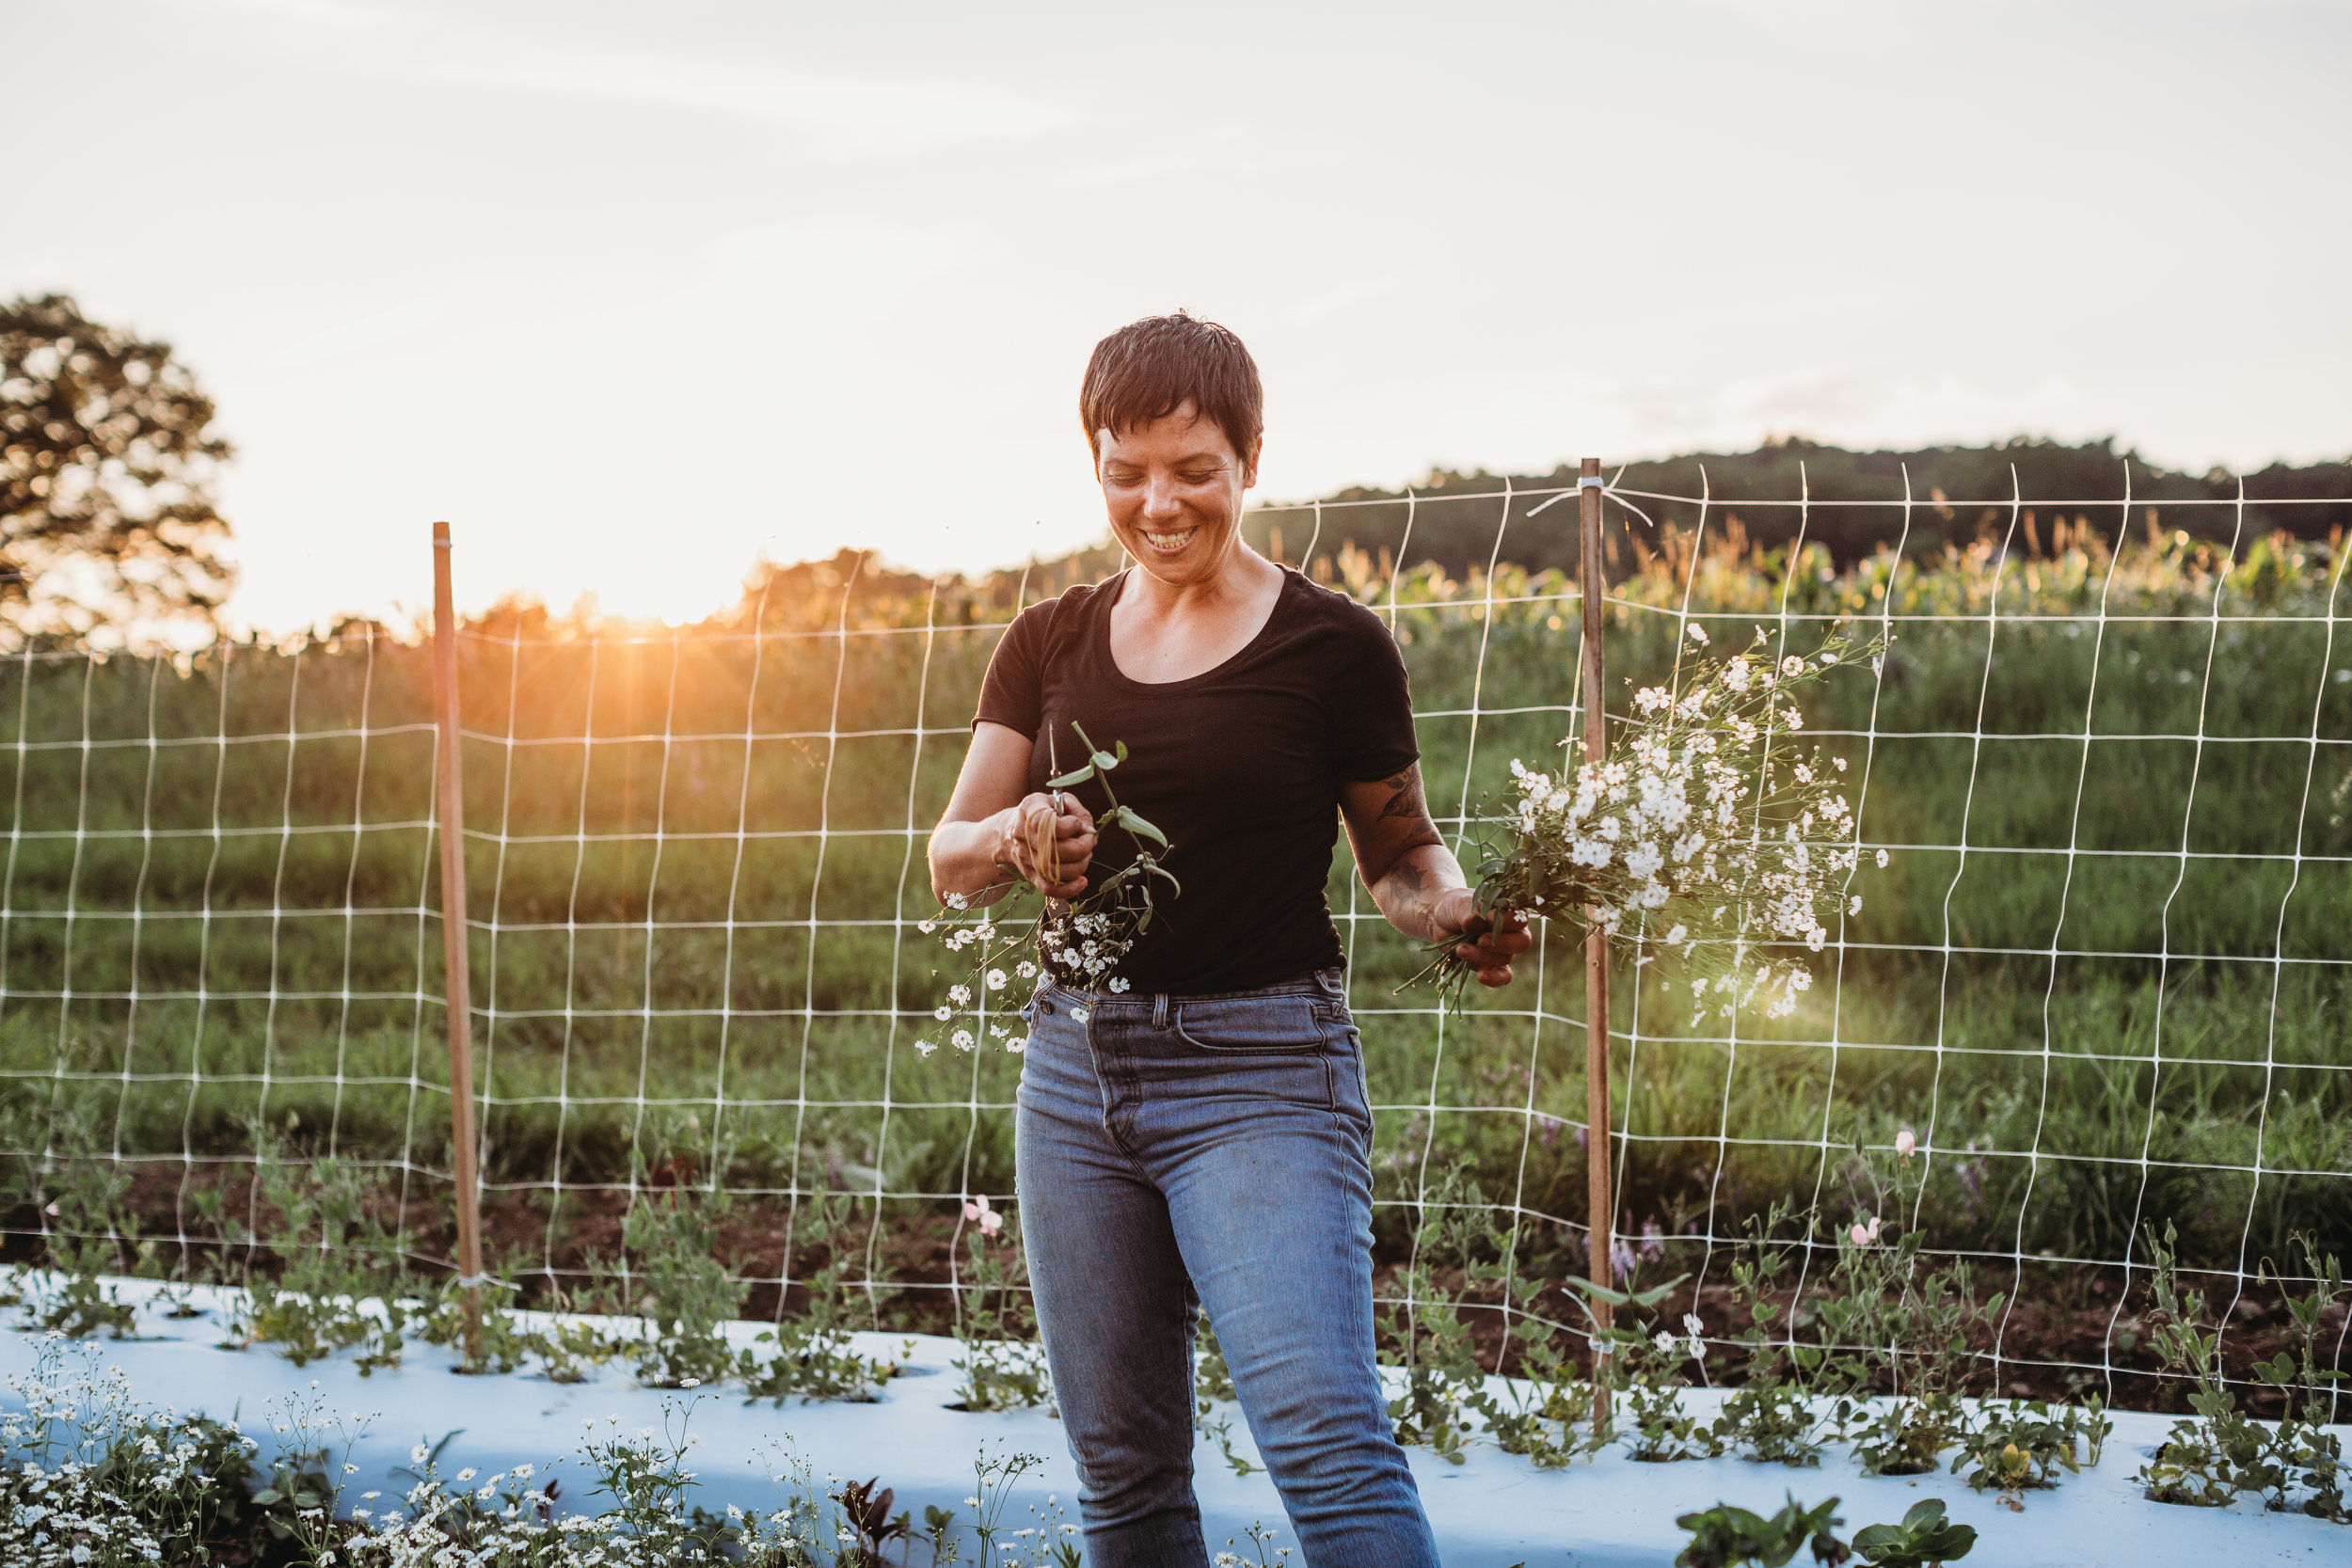 Mel Hardy at Field Edge Flowers in Concord, Massachusetts. Documenting her first season of flower farming.